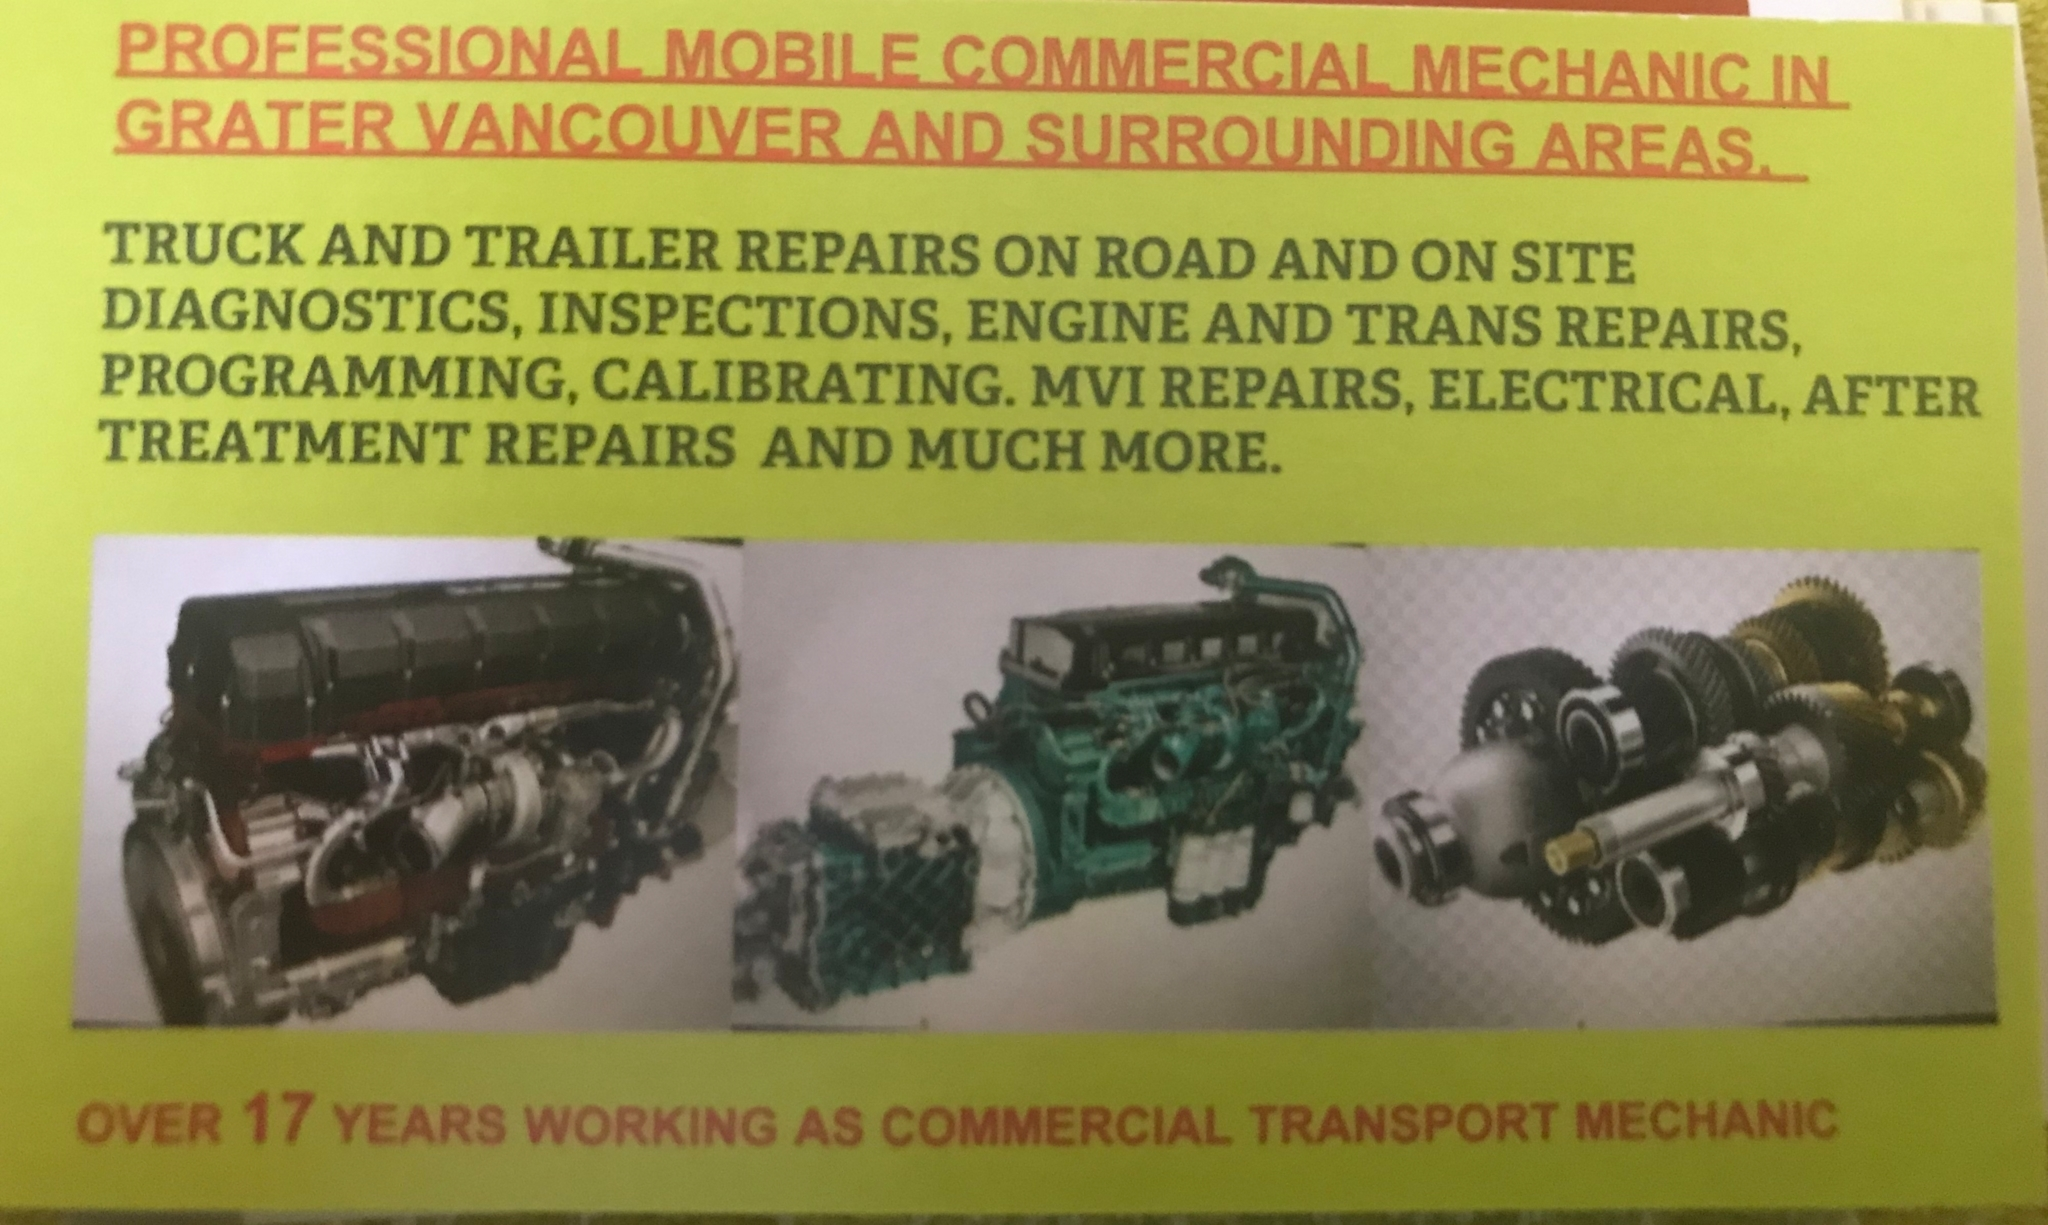 F&A Commercials Truck and Trailer Mobile Mechanic Surrey (604)724-4128